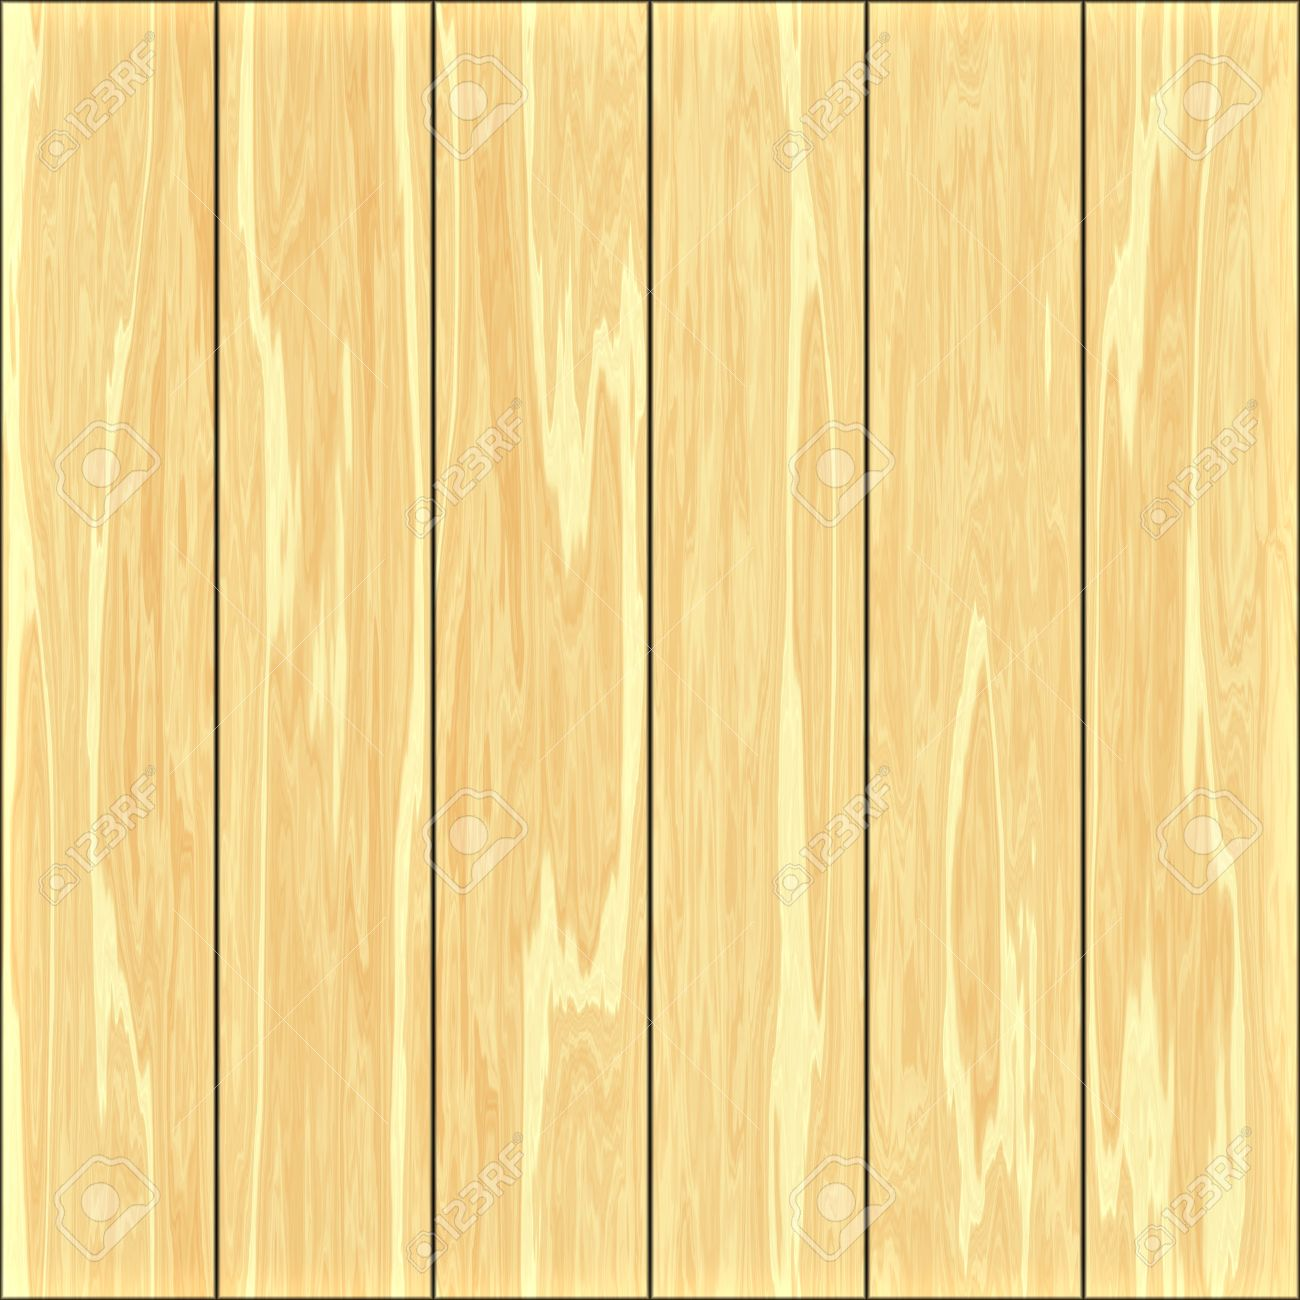 wood wall paneling sheets - Heart.impulsar.co